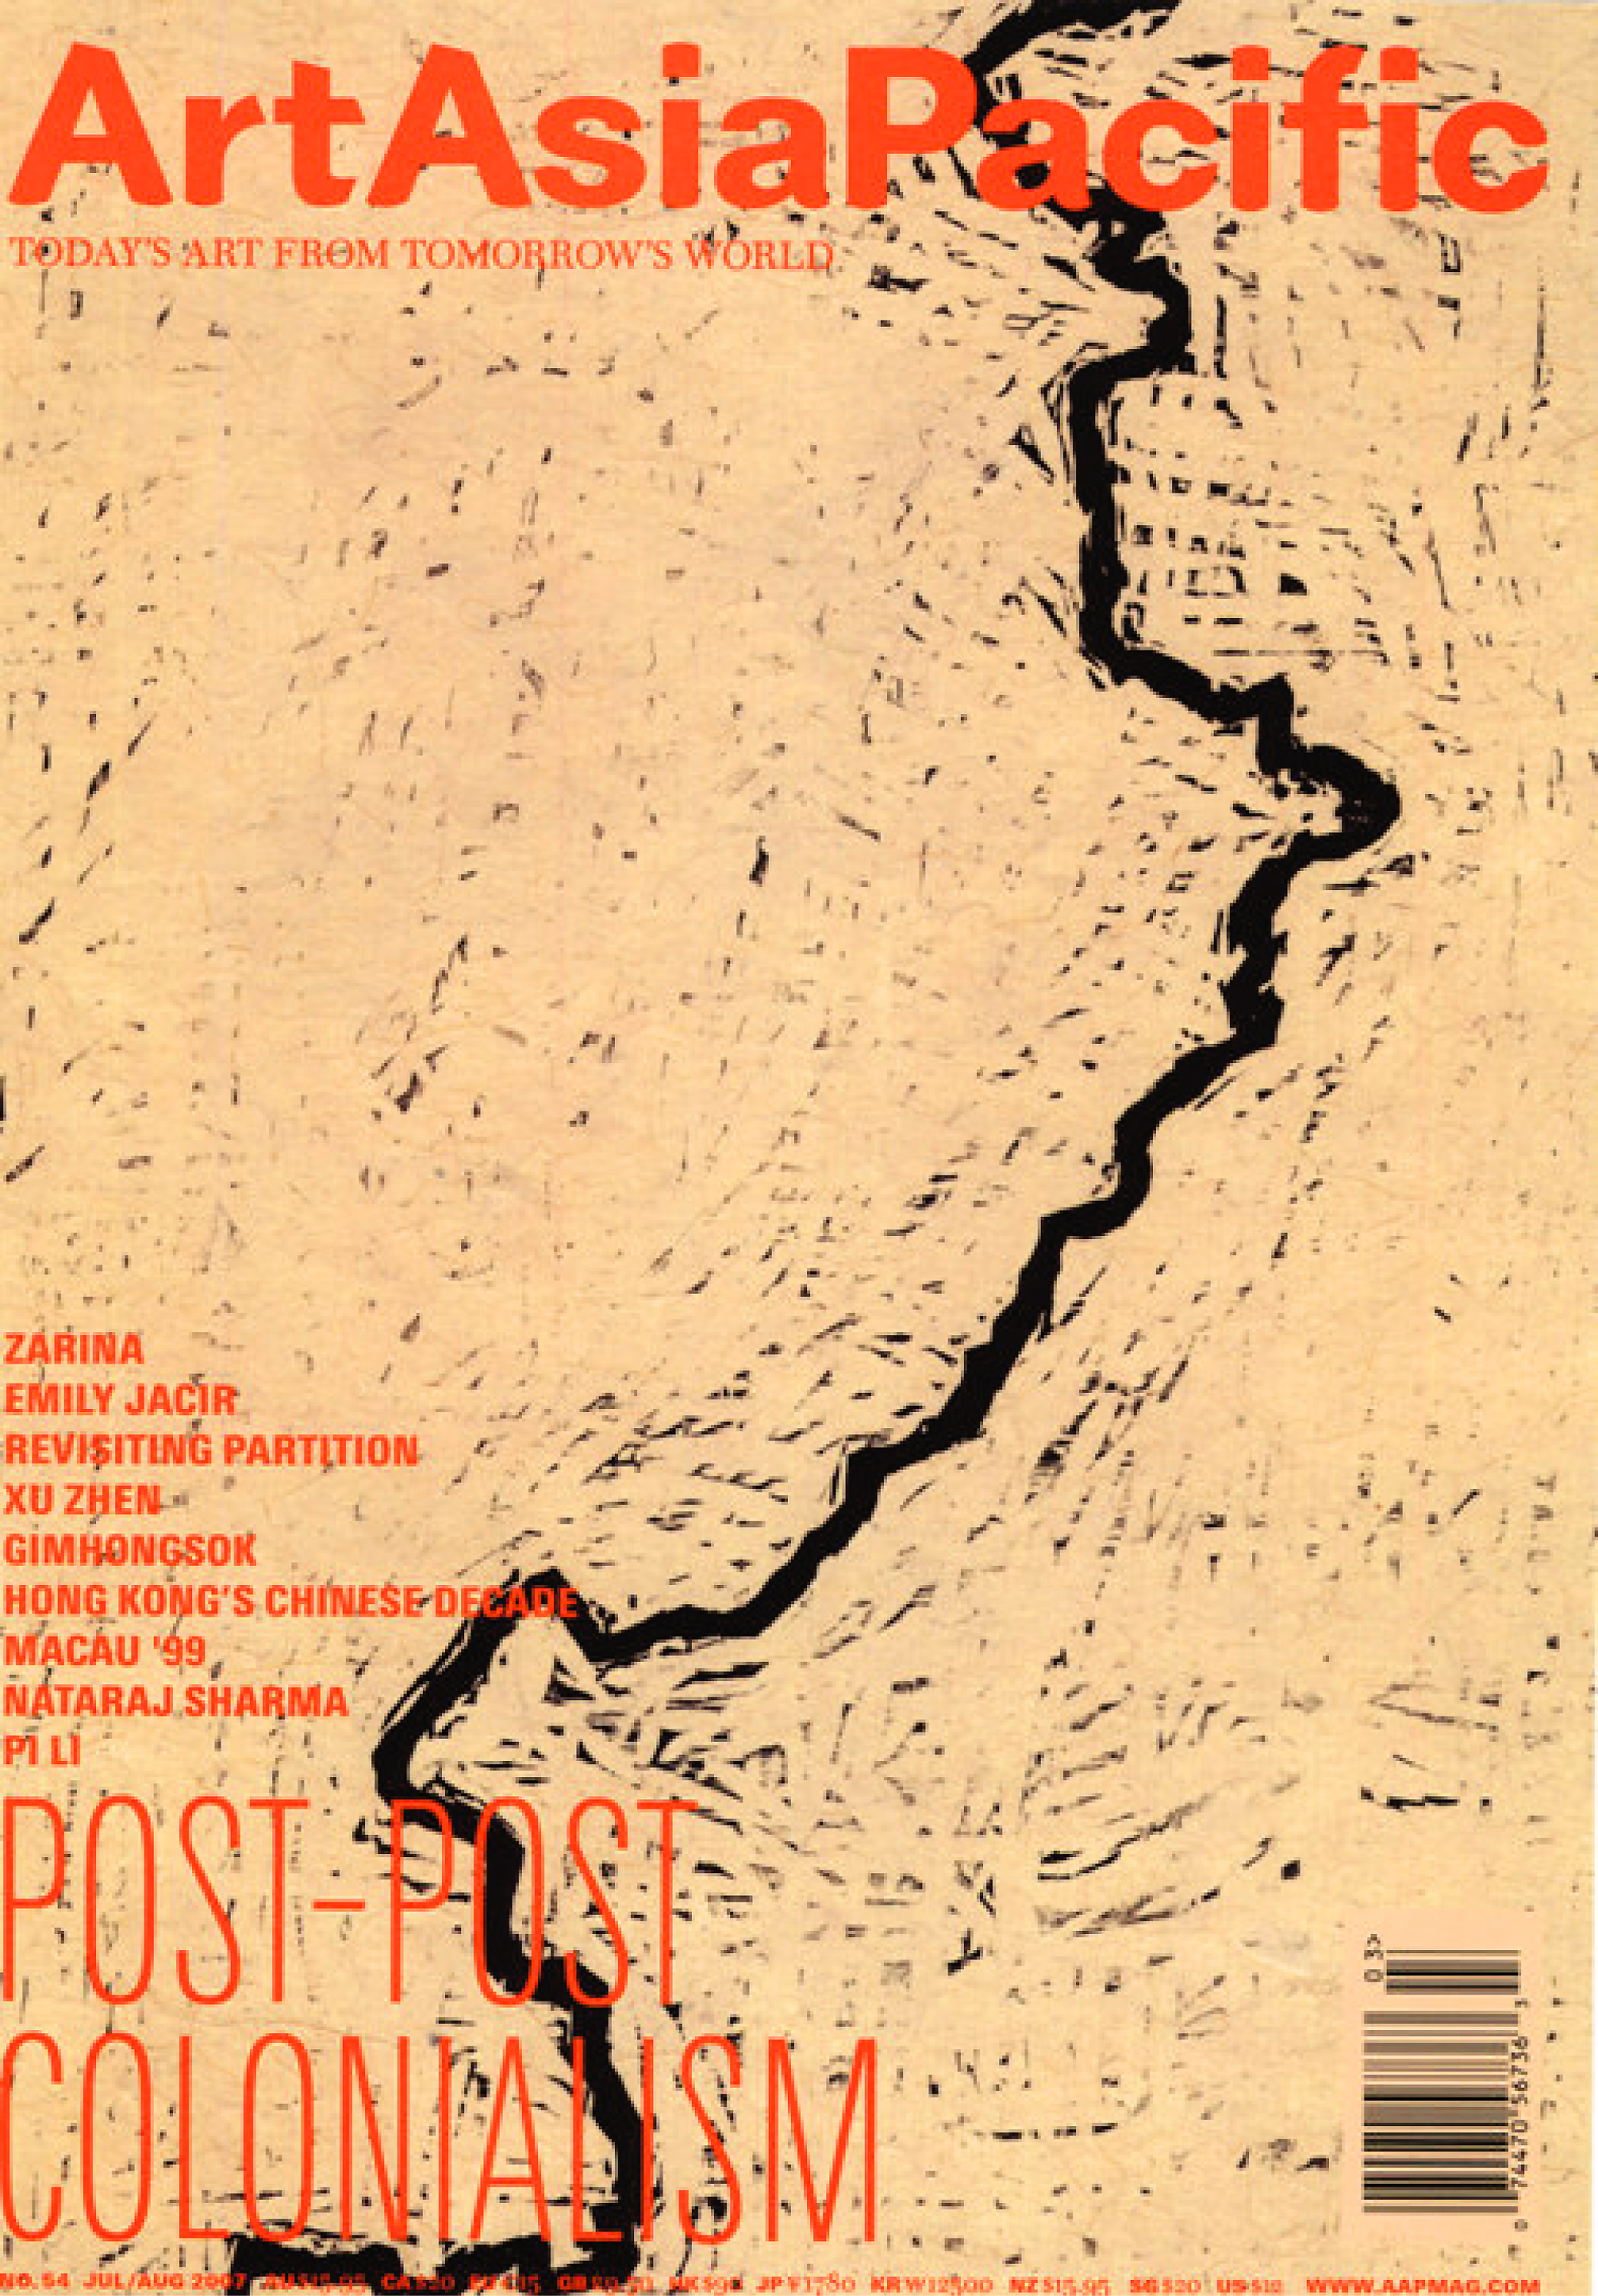 07 ArtAsiaPacific-cover.jpg